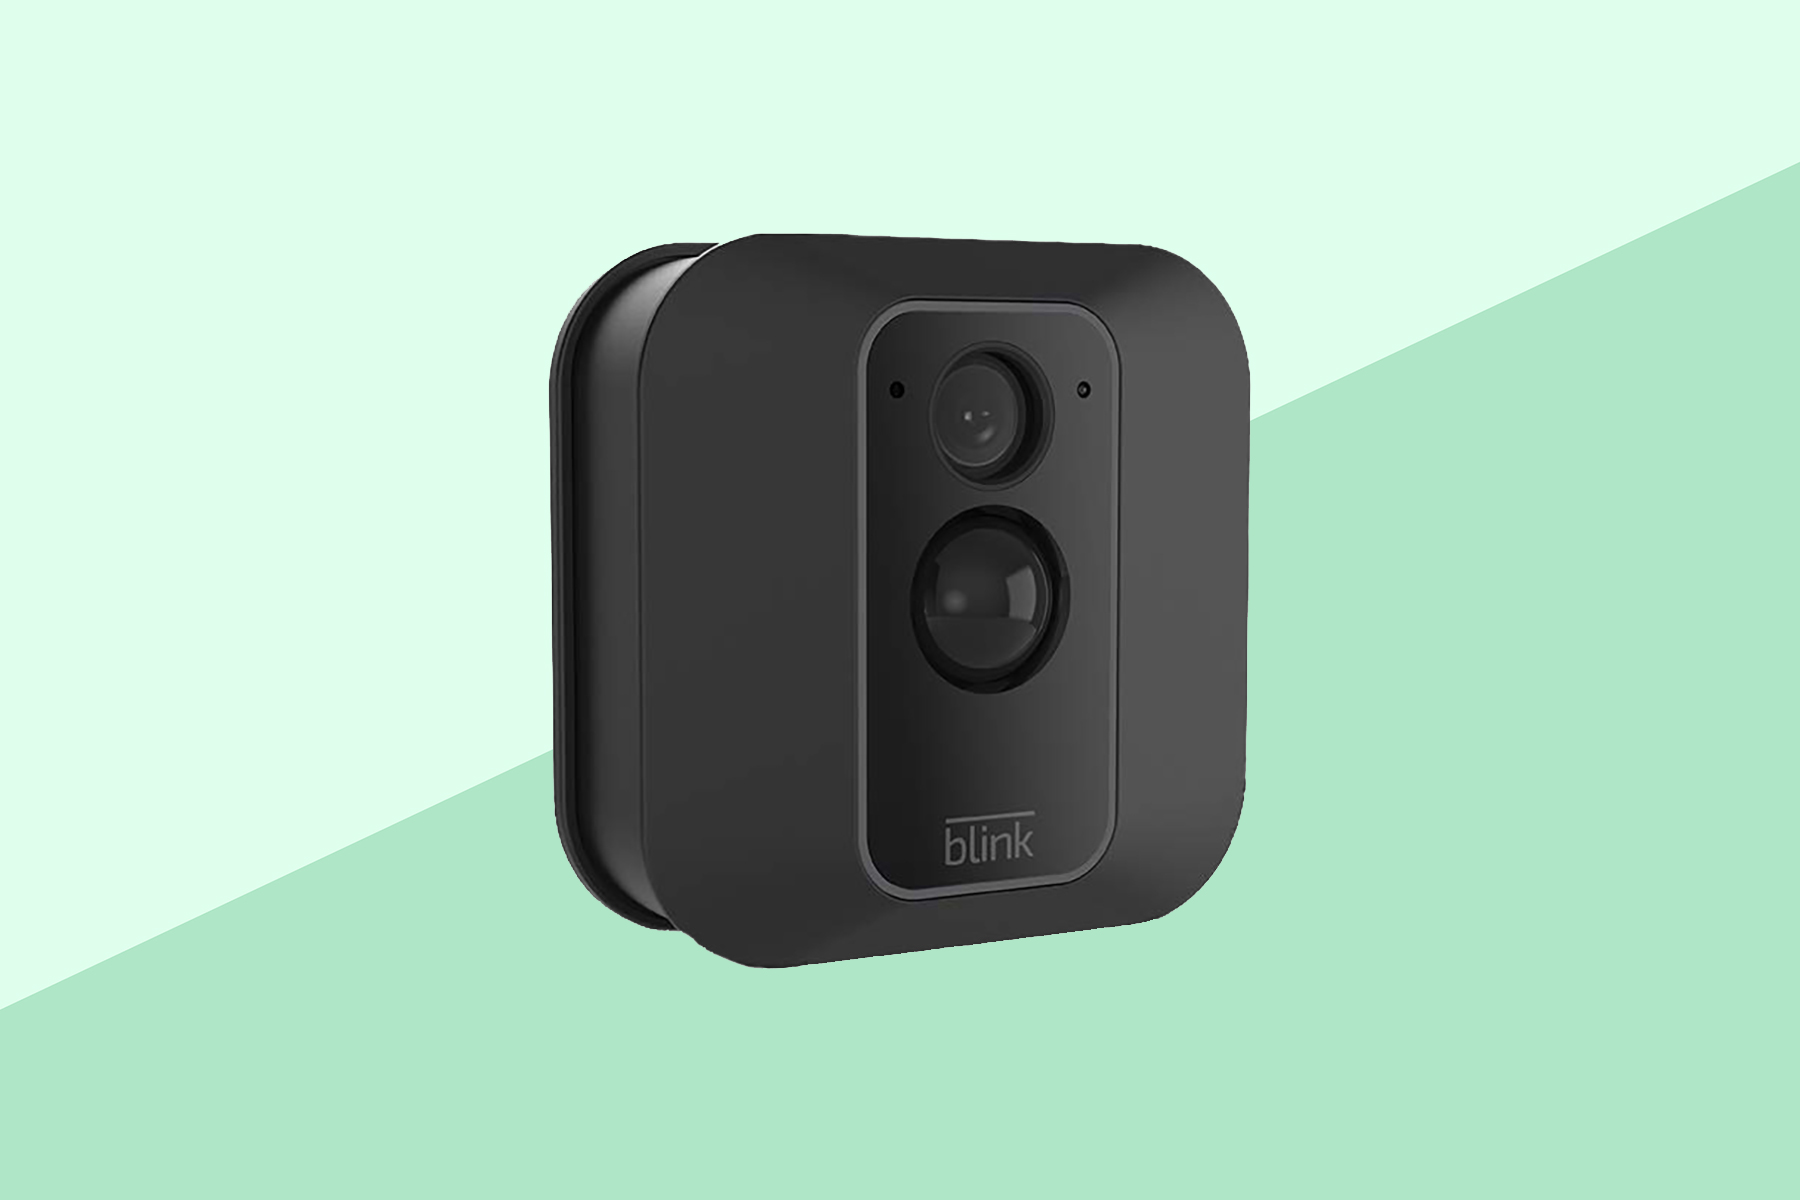 This Brand-New Smart Camera Is Already the Best-Selling Amazon Home Security Device